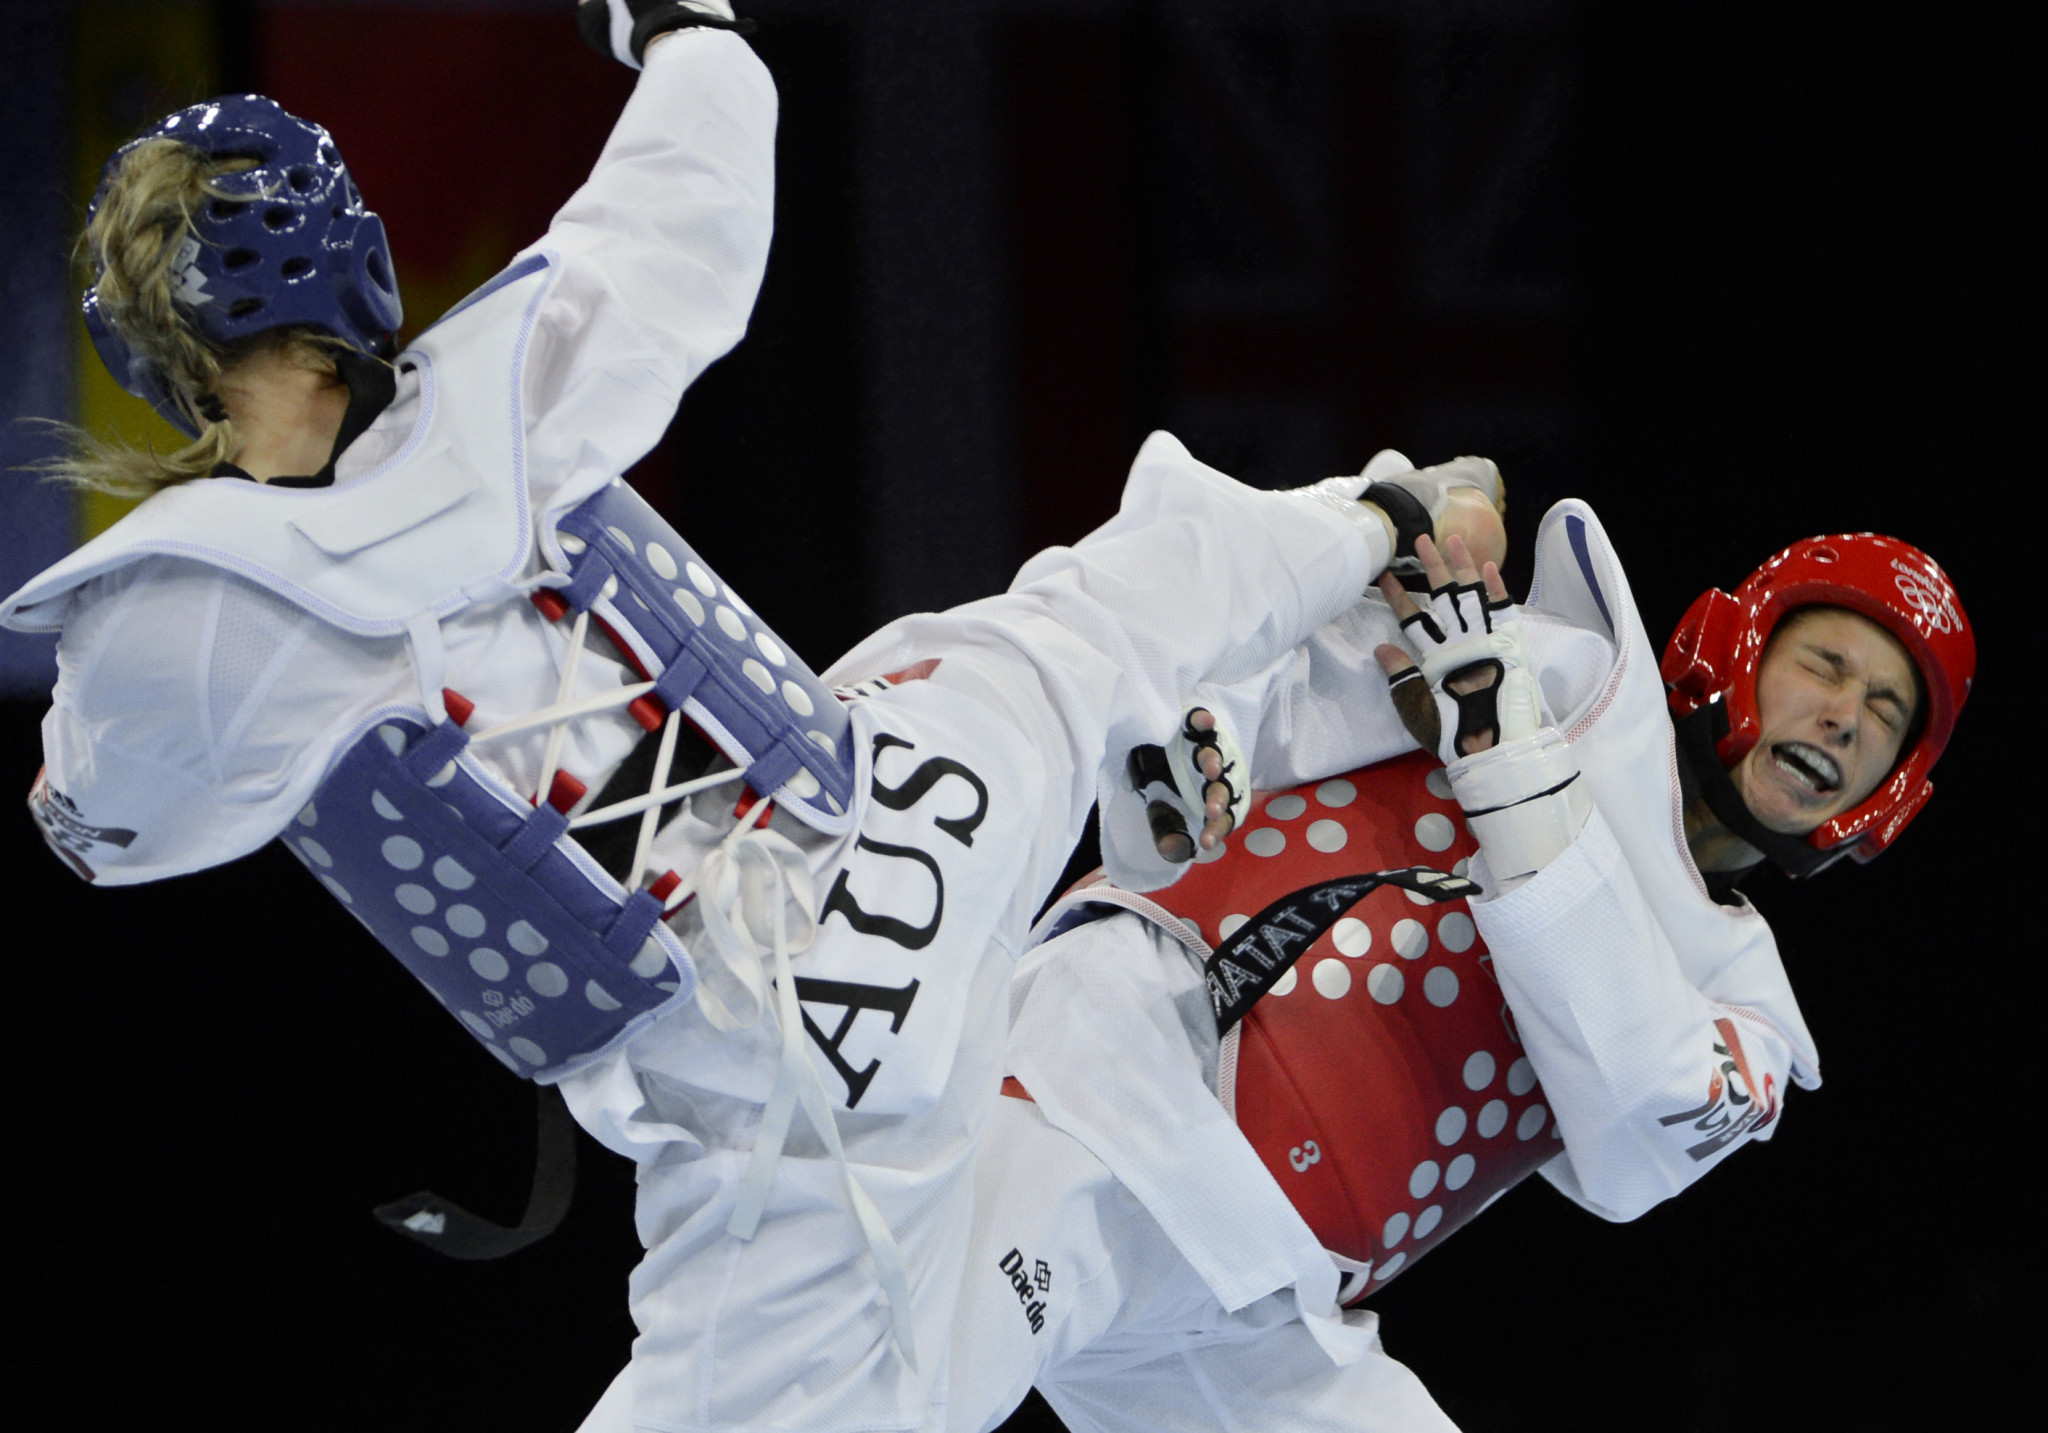 Australia has planned its qualifiers for the World Taekwondo Championships ©Getty Images